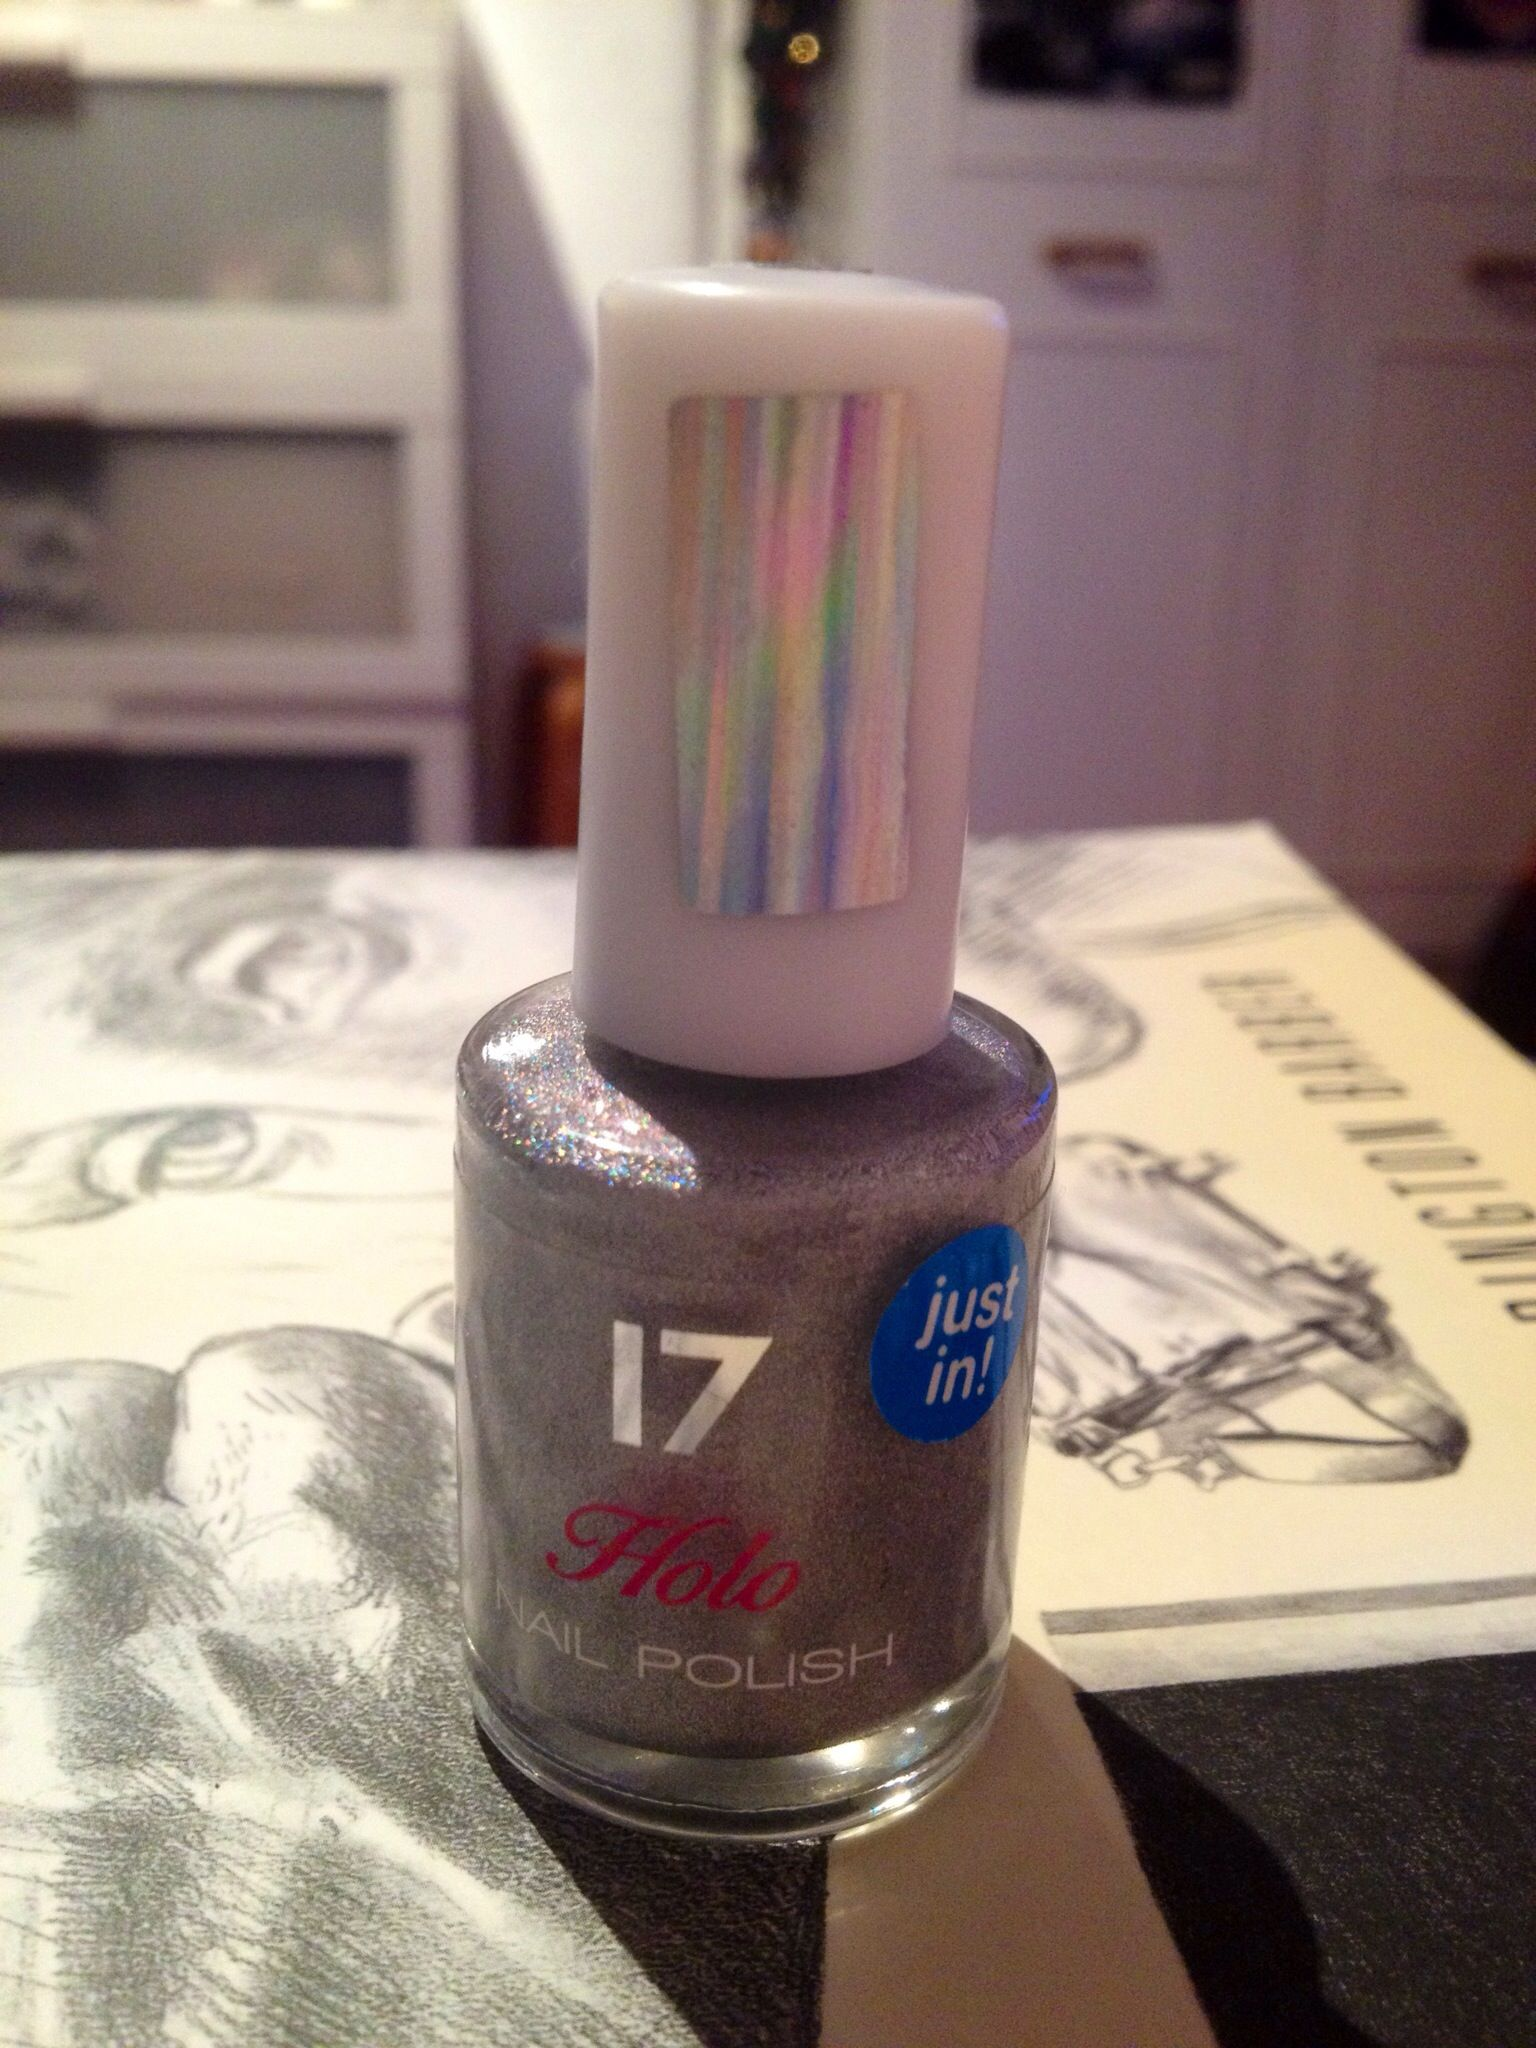 This is a 17 (boots teen range) polish, it\'s called \